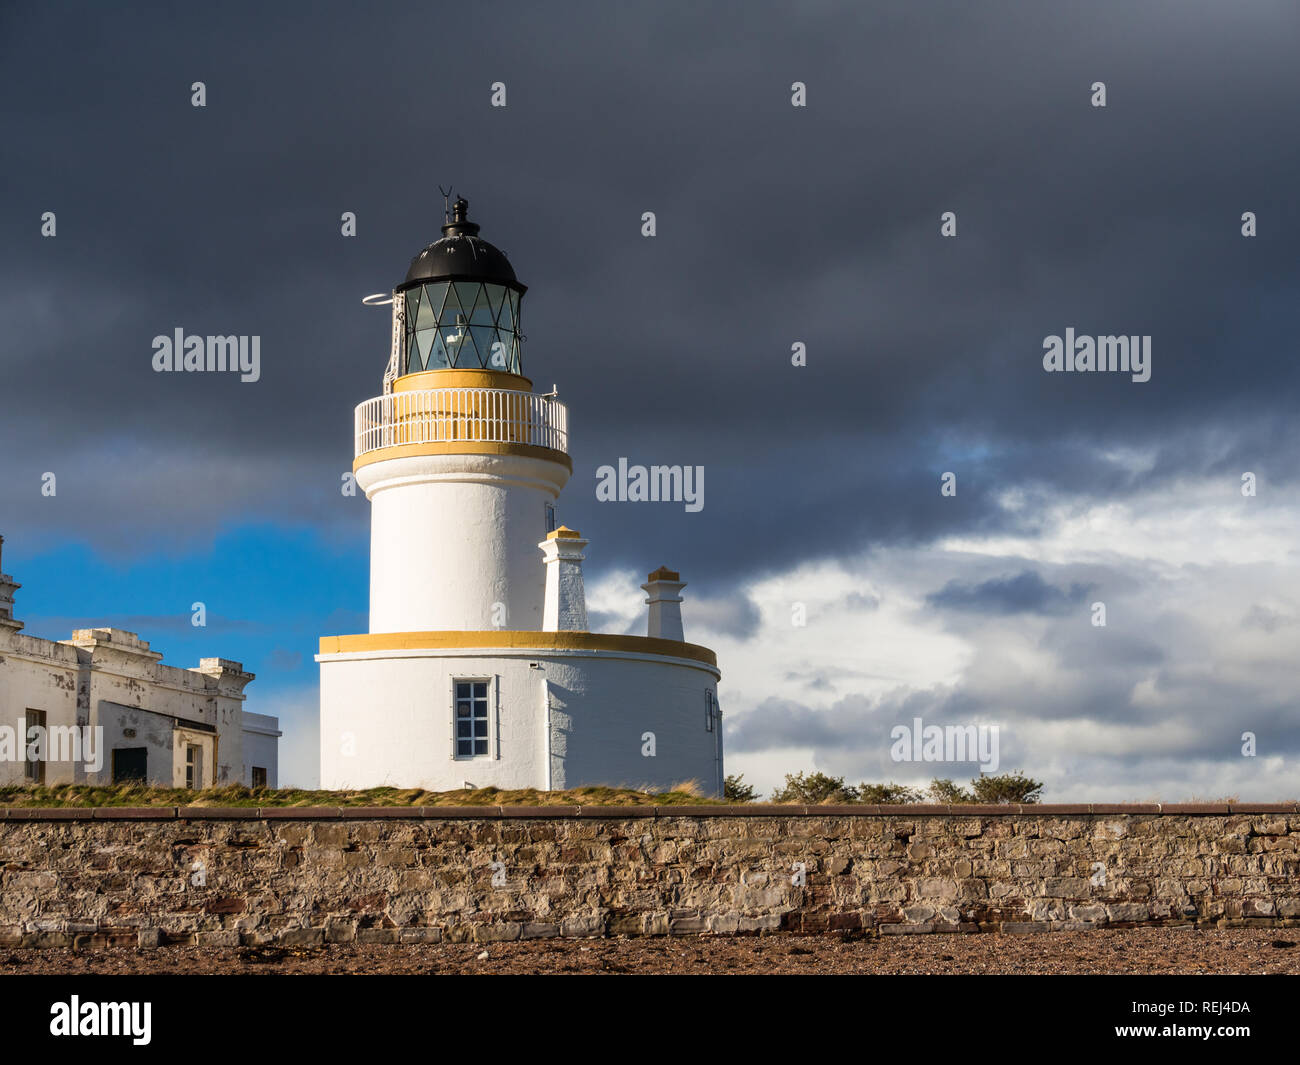 Lighthouse at Chanonry Point on Moray Firth, Scotland - Stock Image